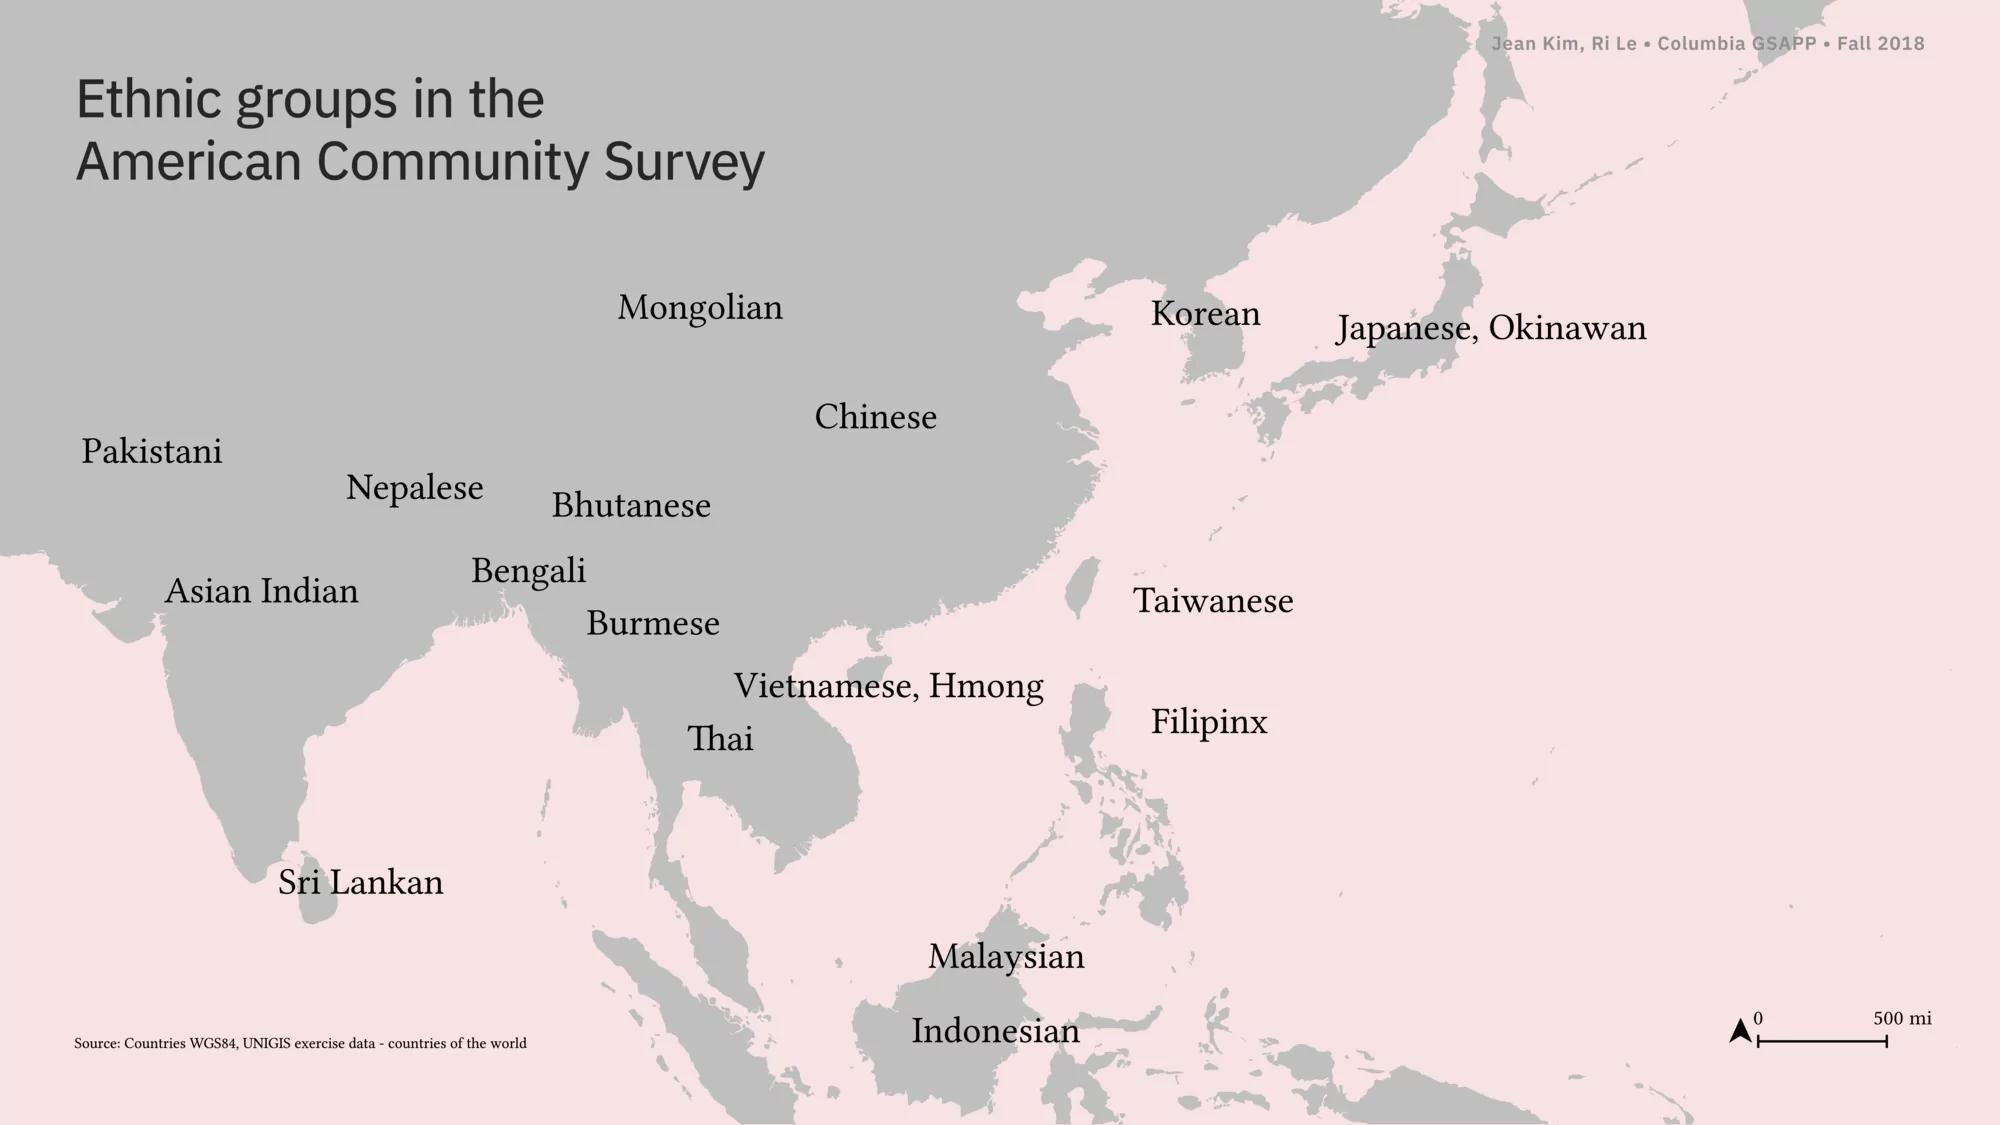 Map of ethnic groups in the American Community Survey